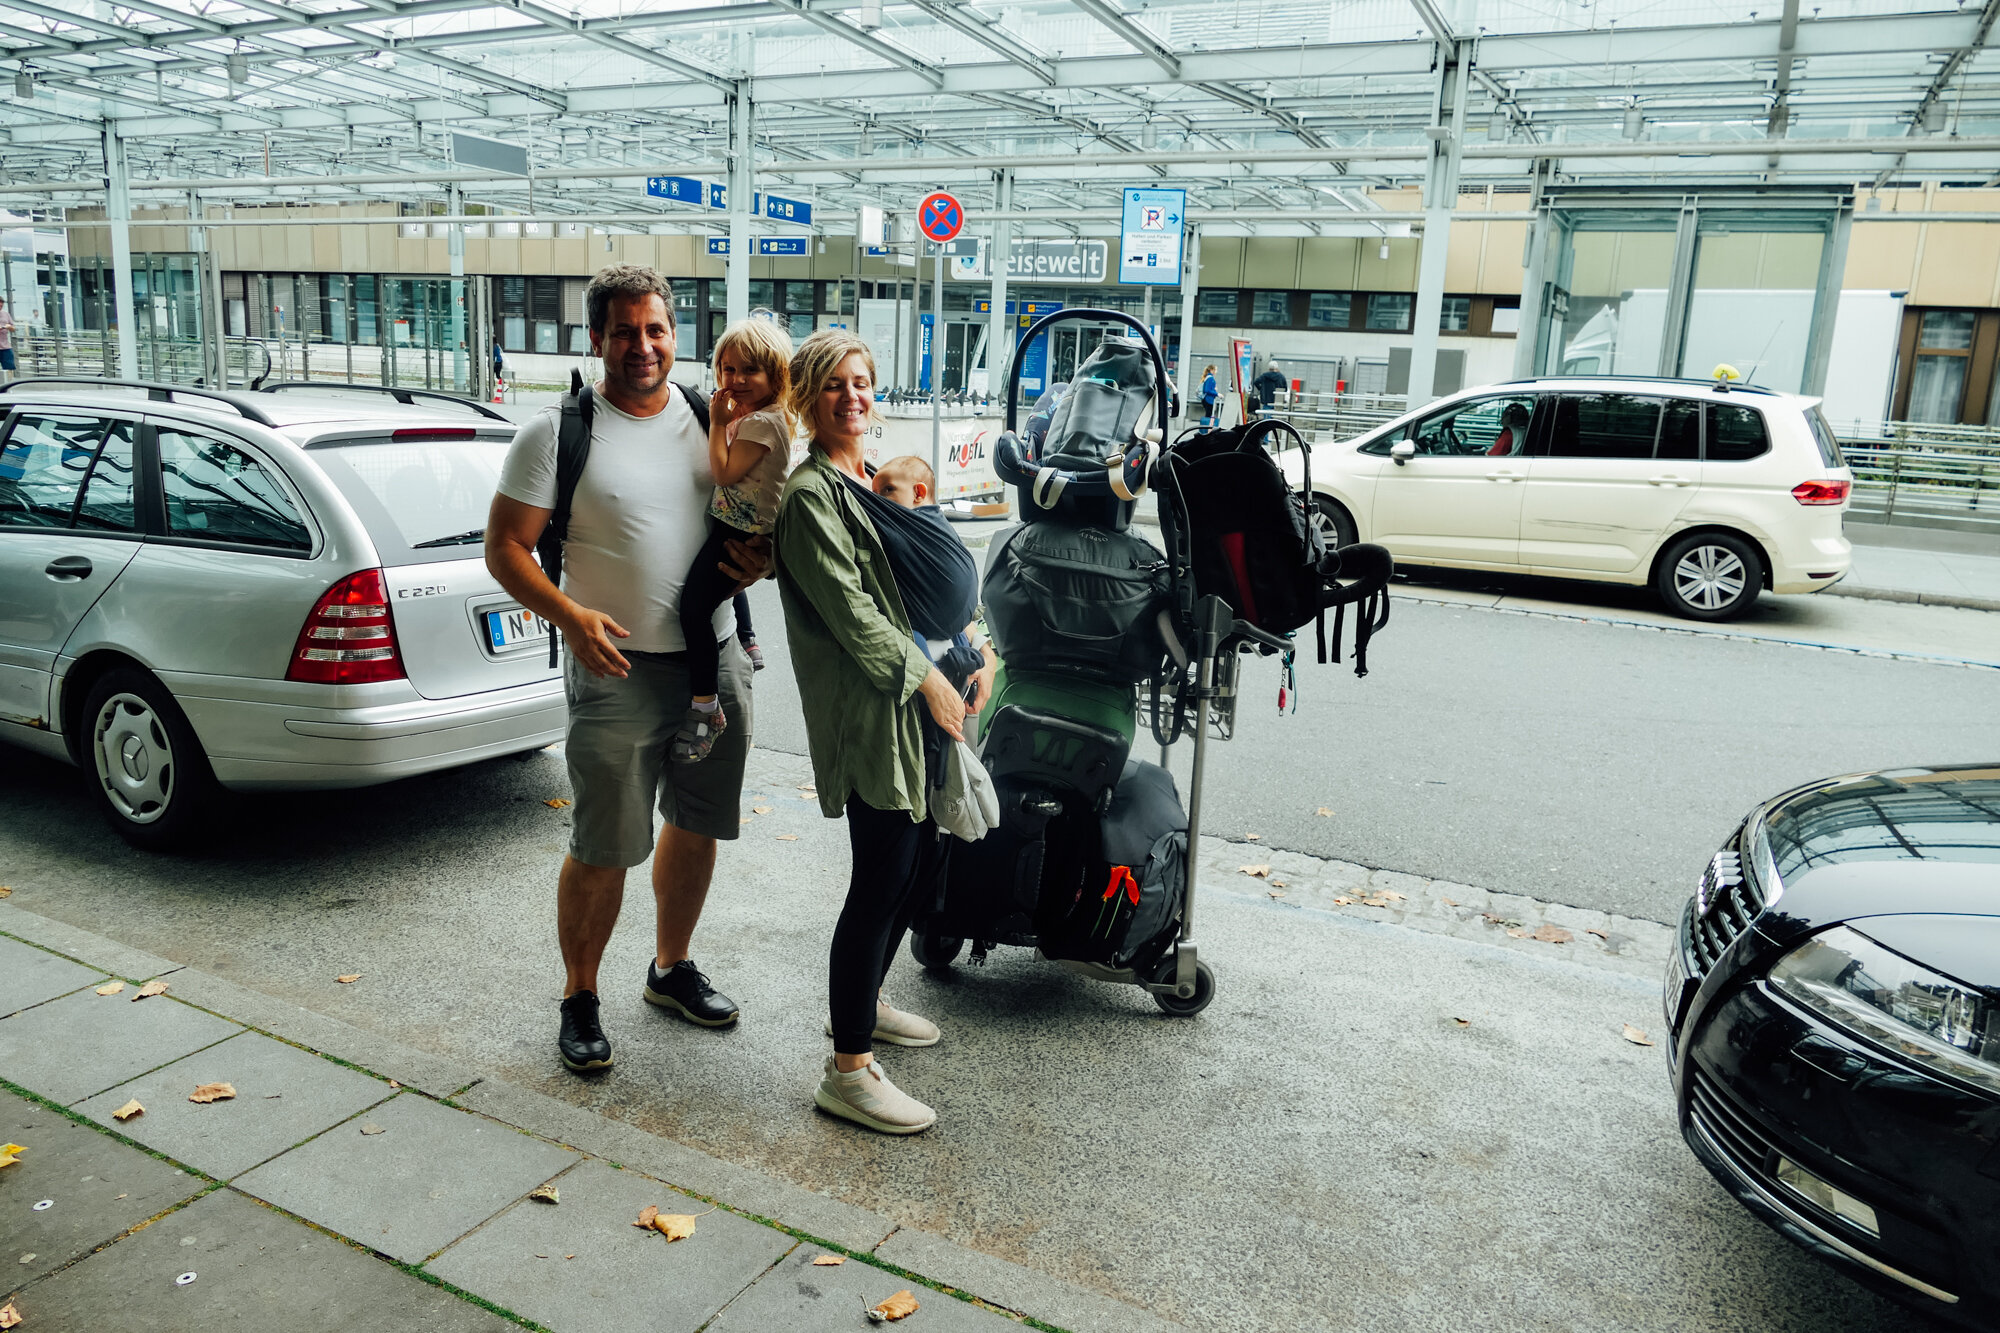 Family stands on curb at airport with baggage